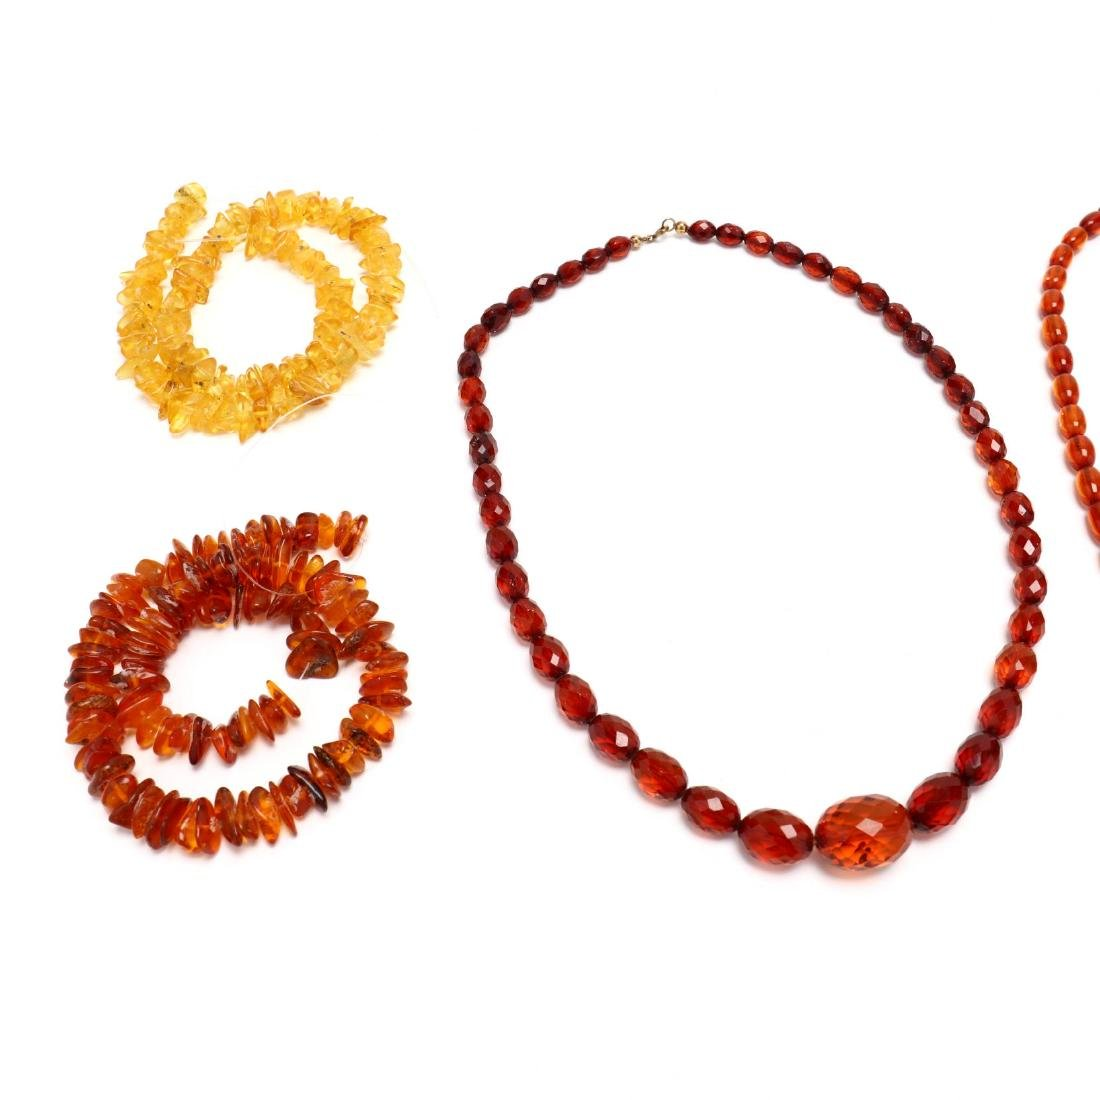 Group of Amber Bead Jewelry - 3